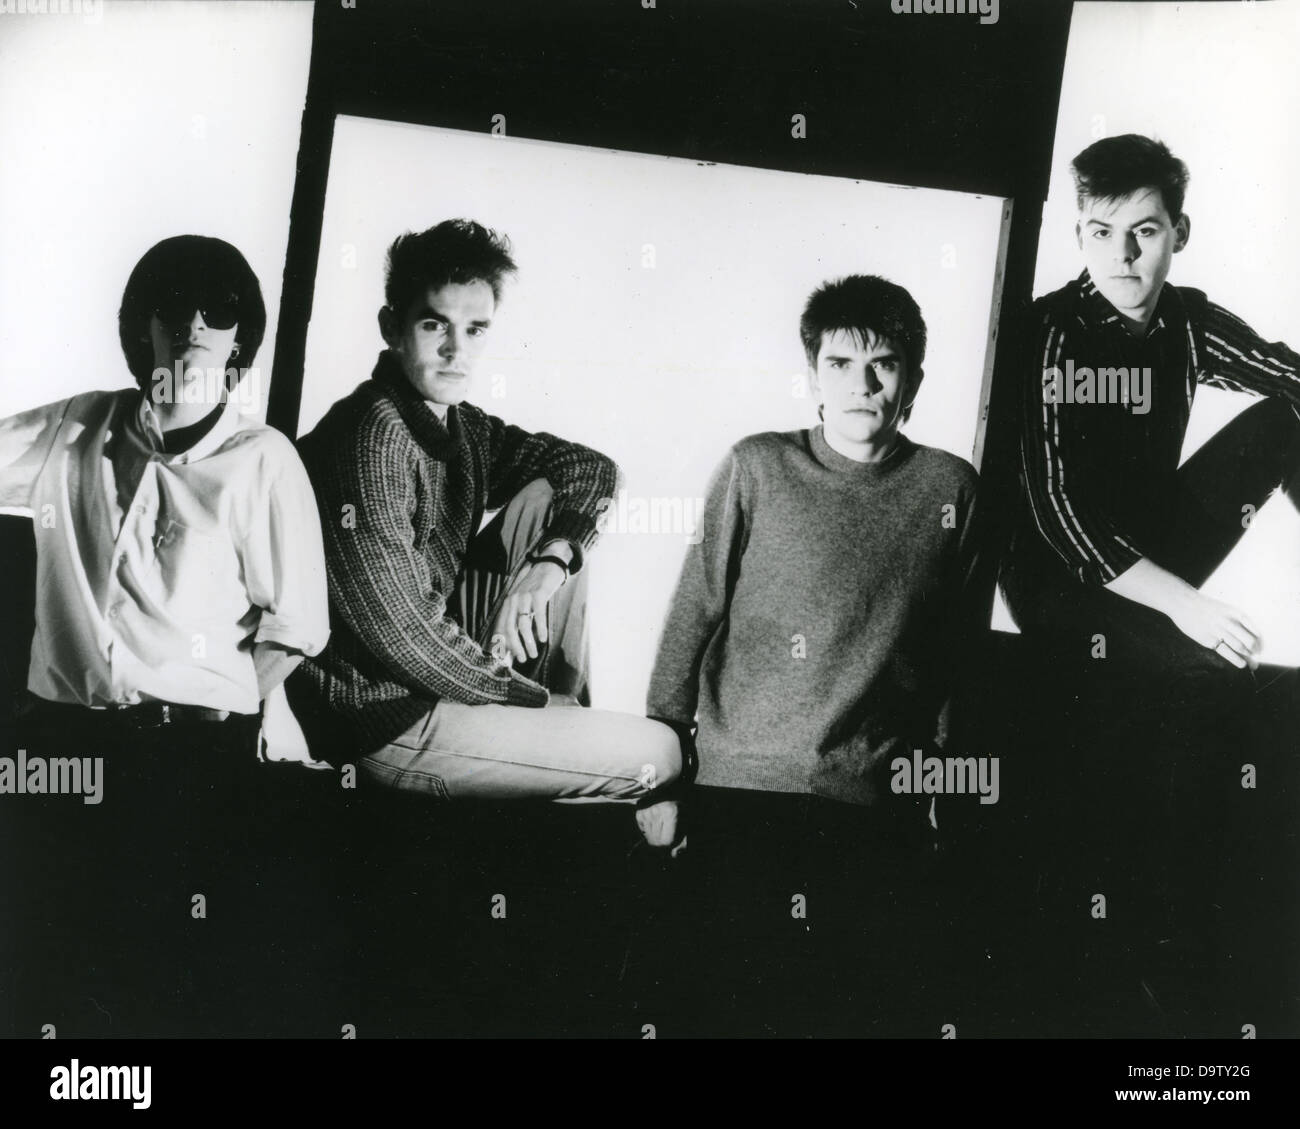 THE SMITHS Promotional photo of UK rock group about 1985 - Stock Image